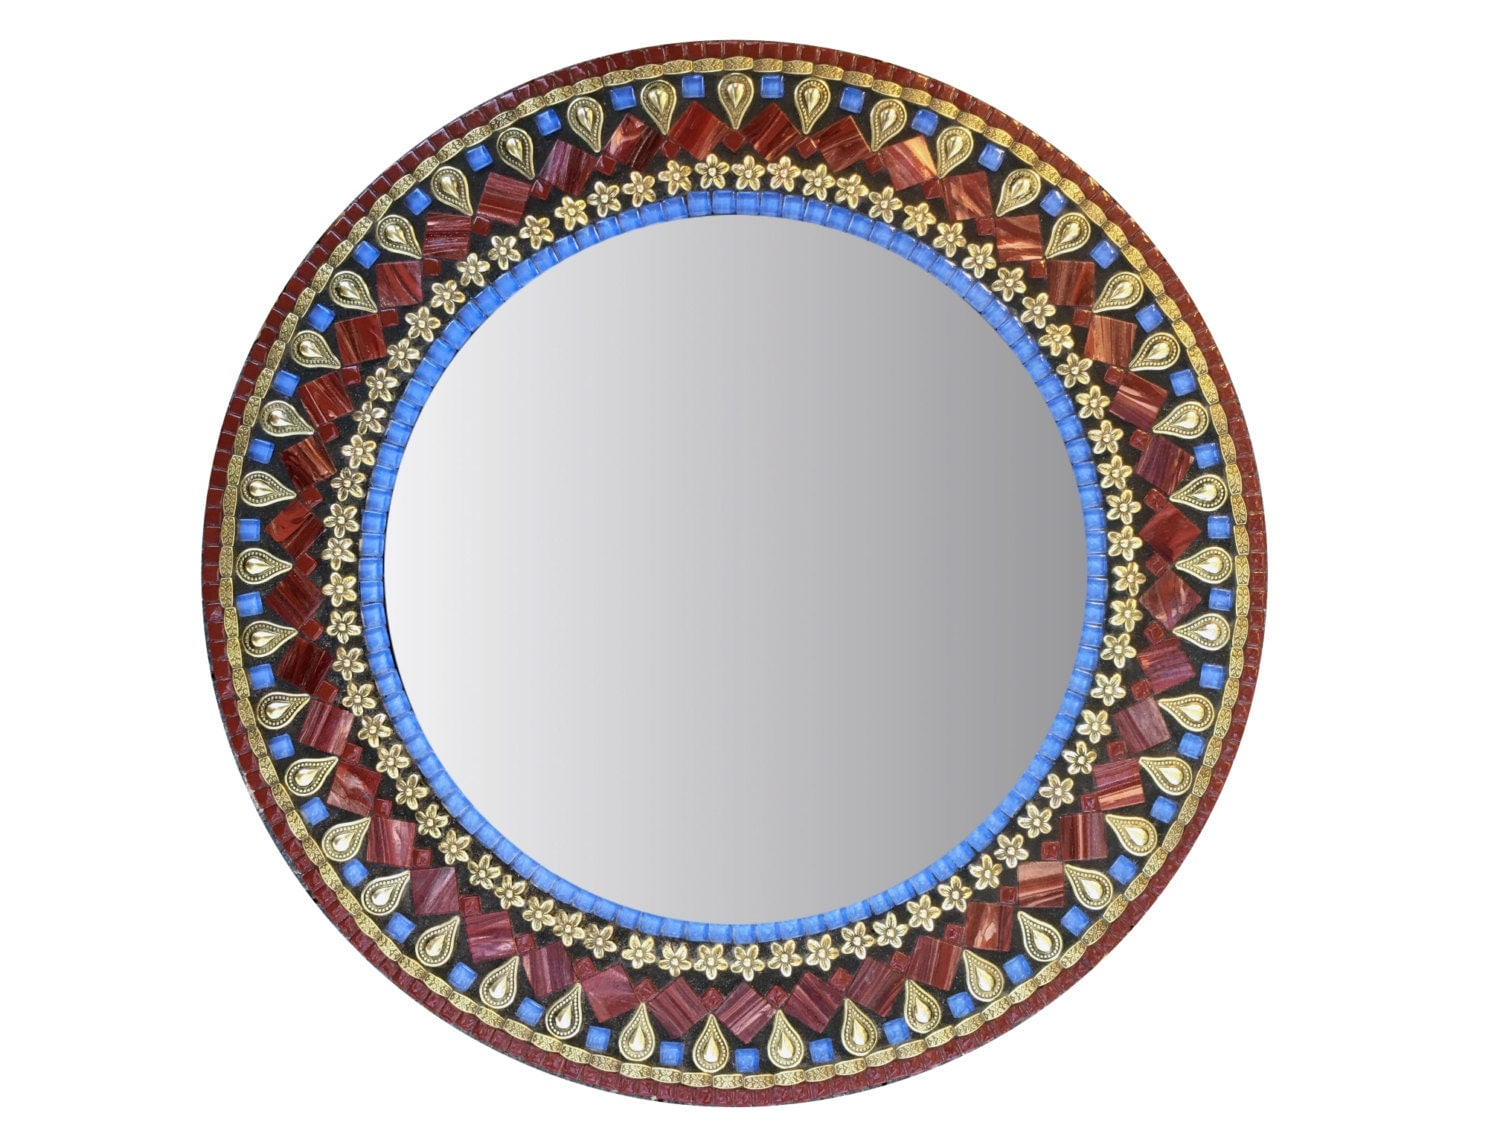 Round wall mirror mosaic mirror gold red blue mixed media for Mosaic mirror